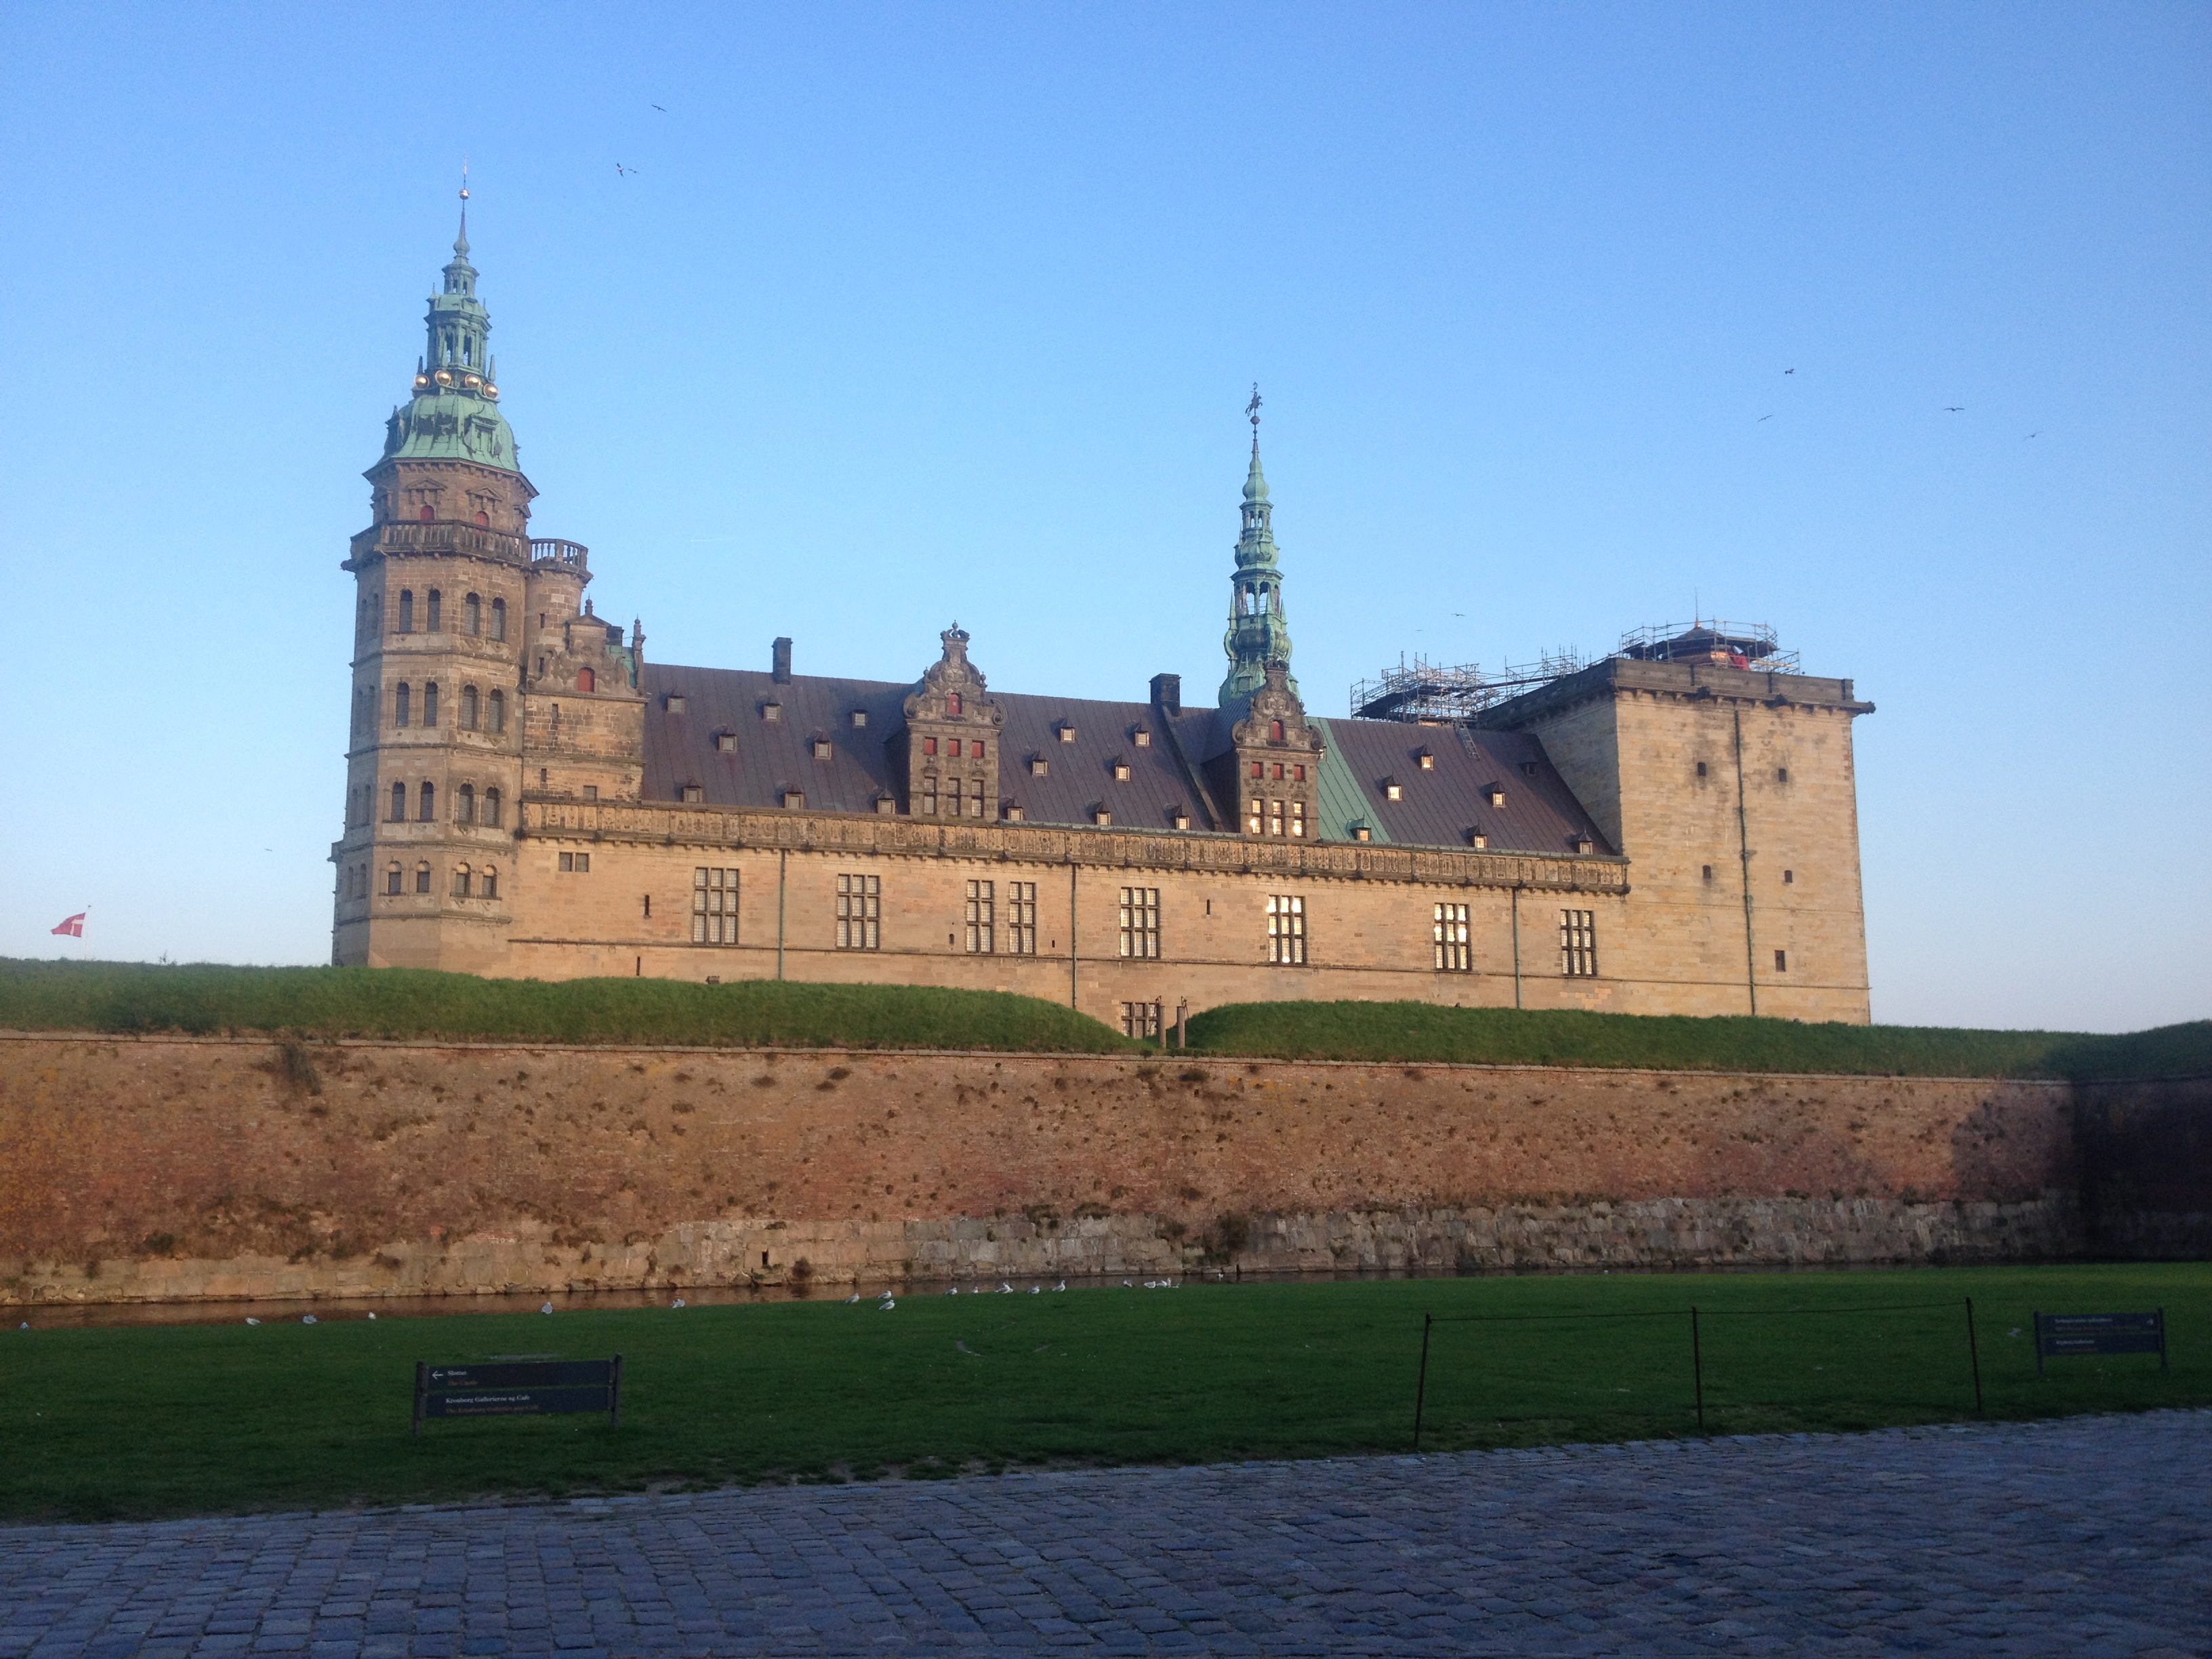 The castle at Helsingør, where Shakespeare's Hamlet took place.